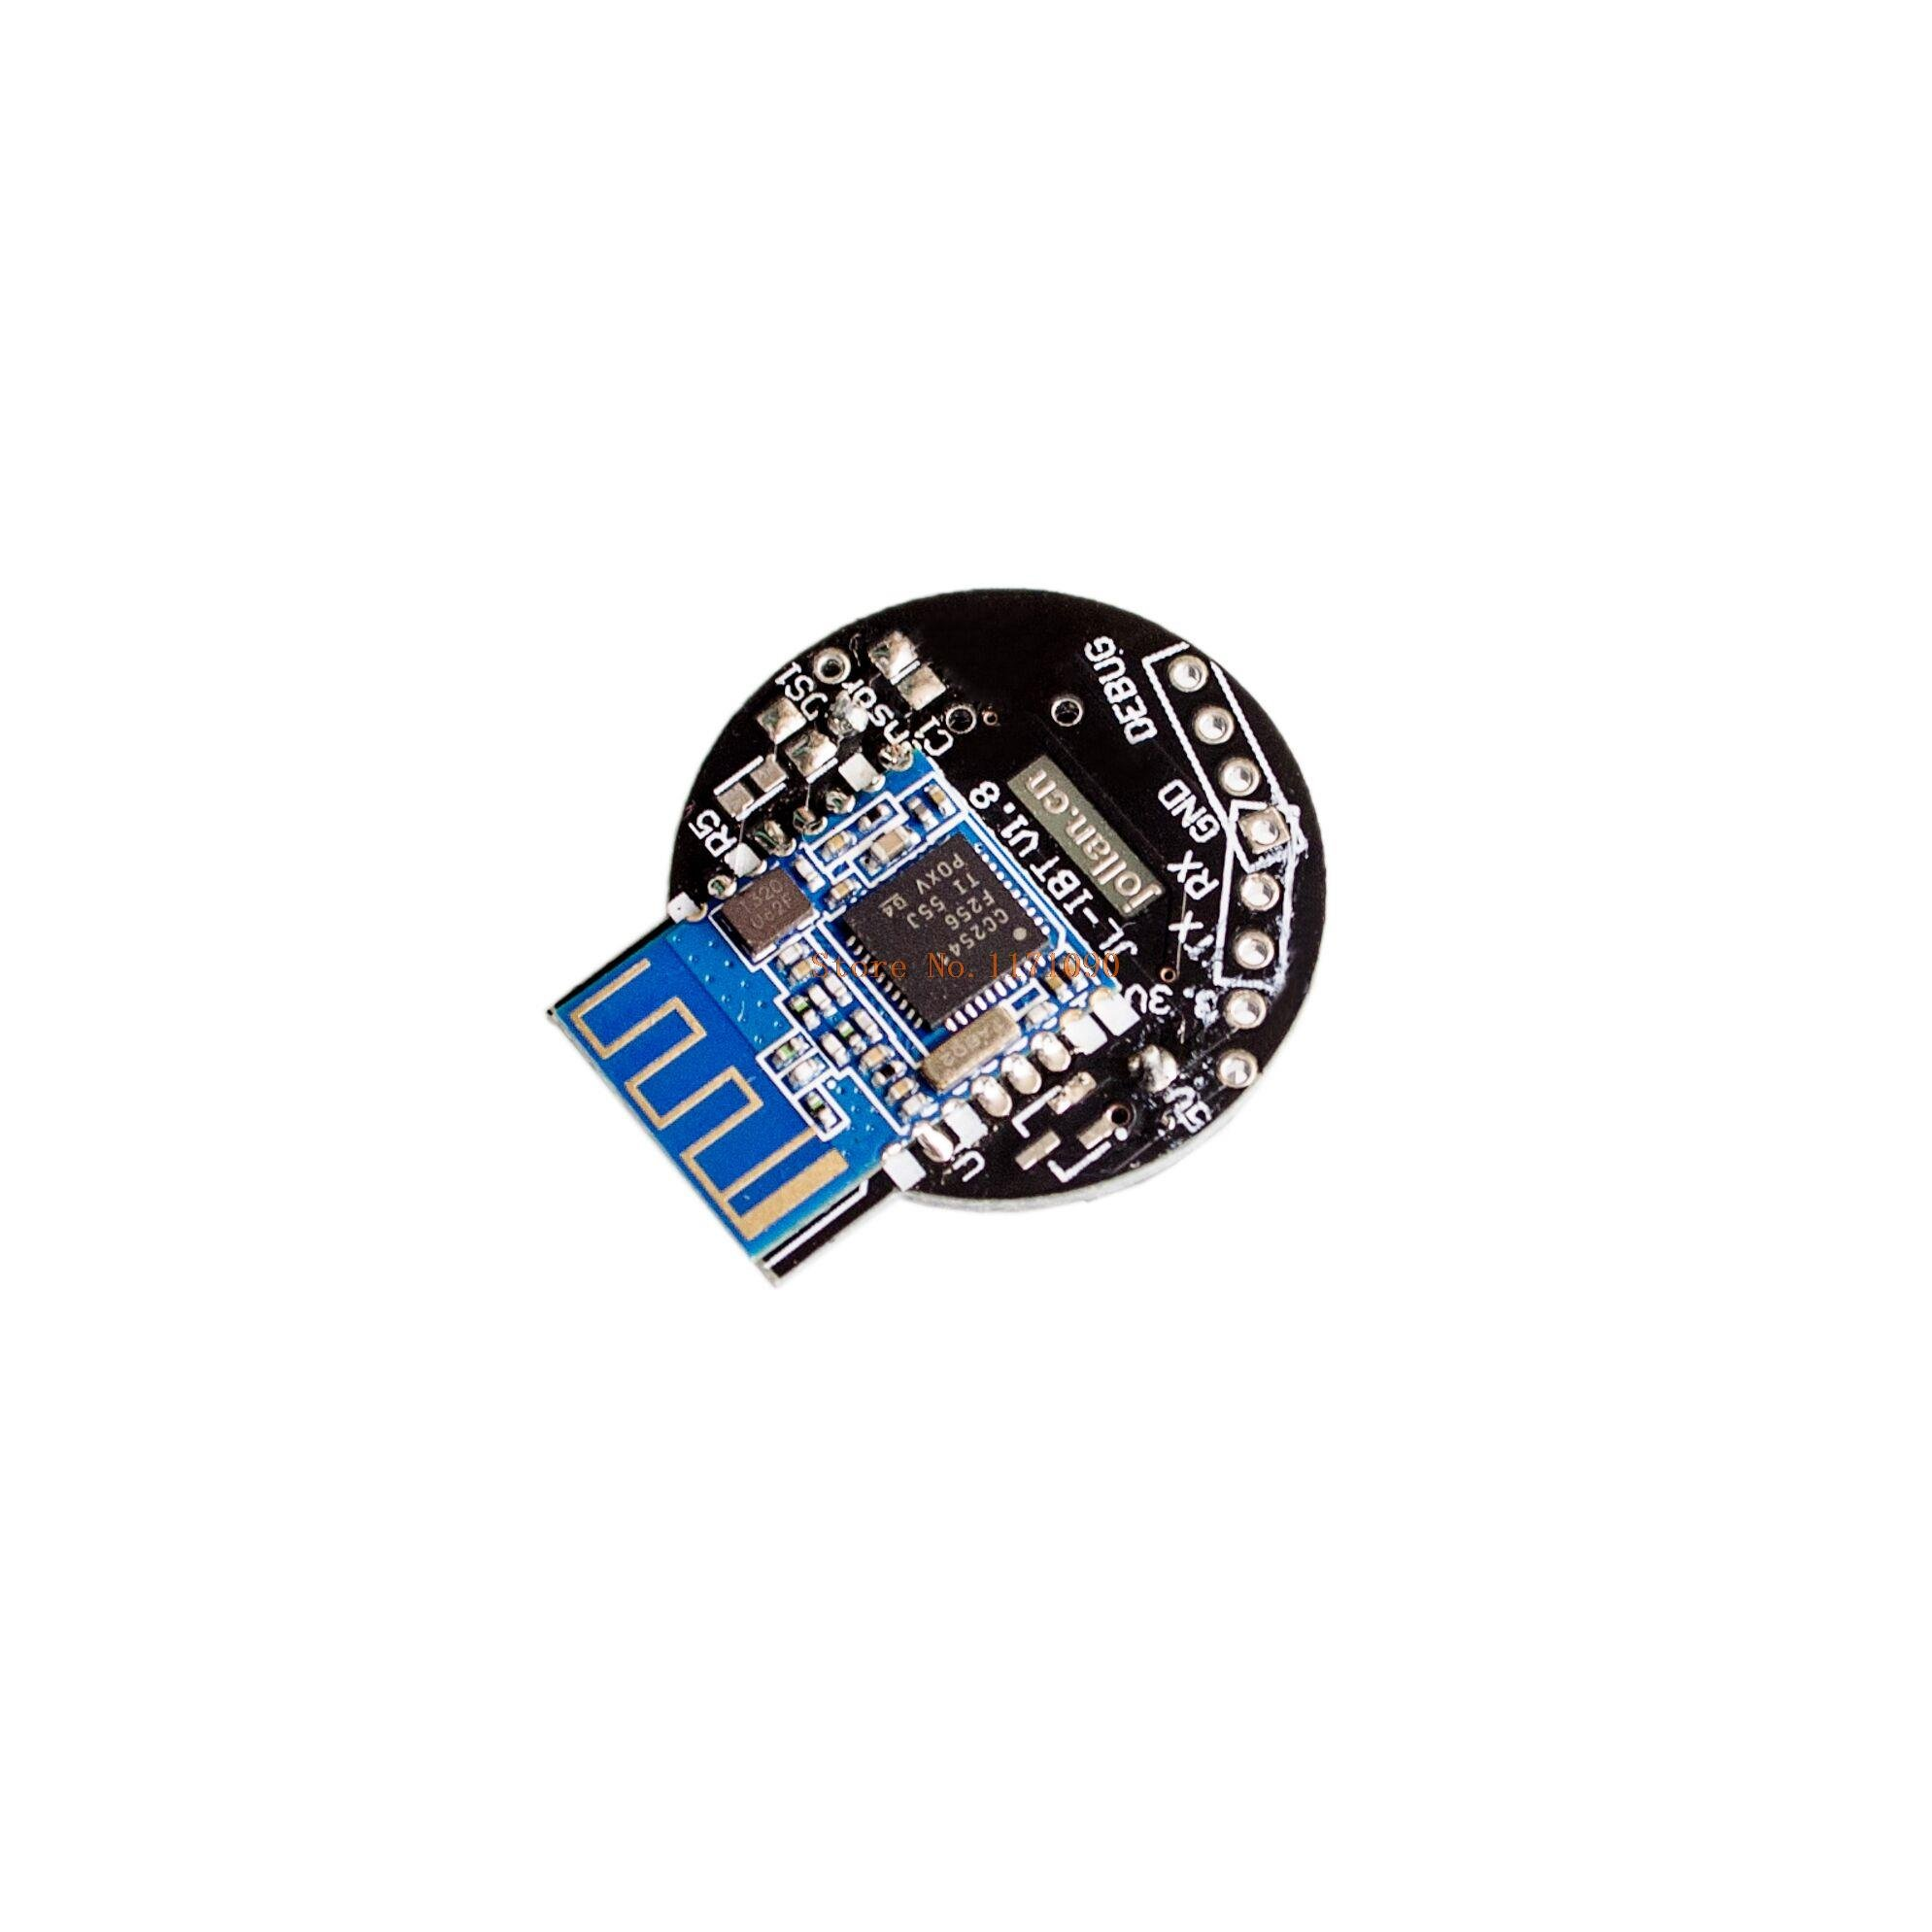 SuperiParts 5pcs/lot iBeacon Module Bluetooth 4.0 BLE Support Near-field Positioning Sensor Wireless Acquisition by SuperiParts